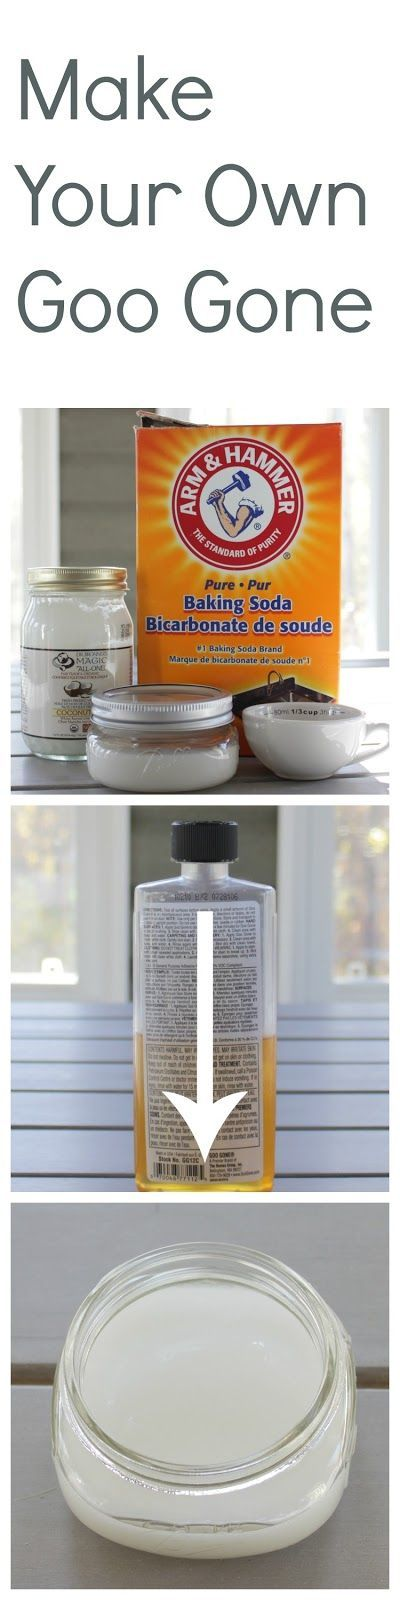 Skip the chemicals with this goo remover that uses natural ingredients only. Via Simple is Pretty: Homemade Goo Gone